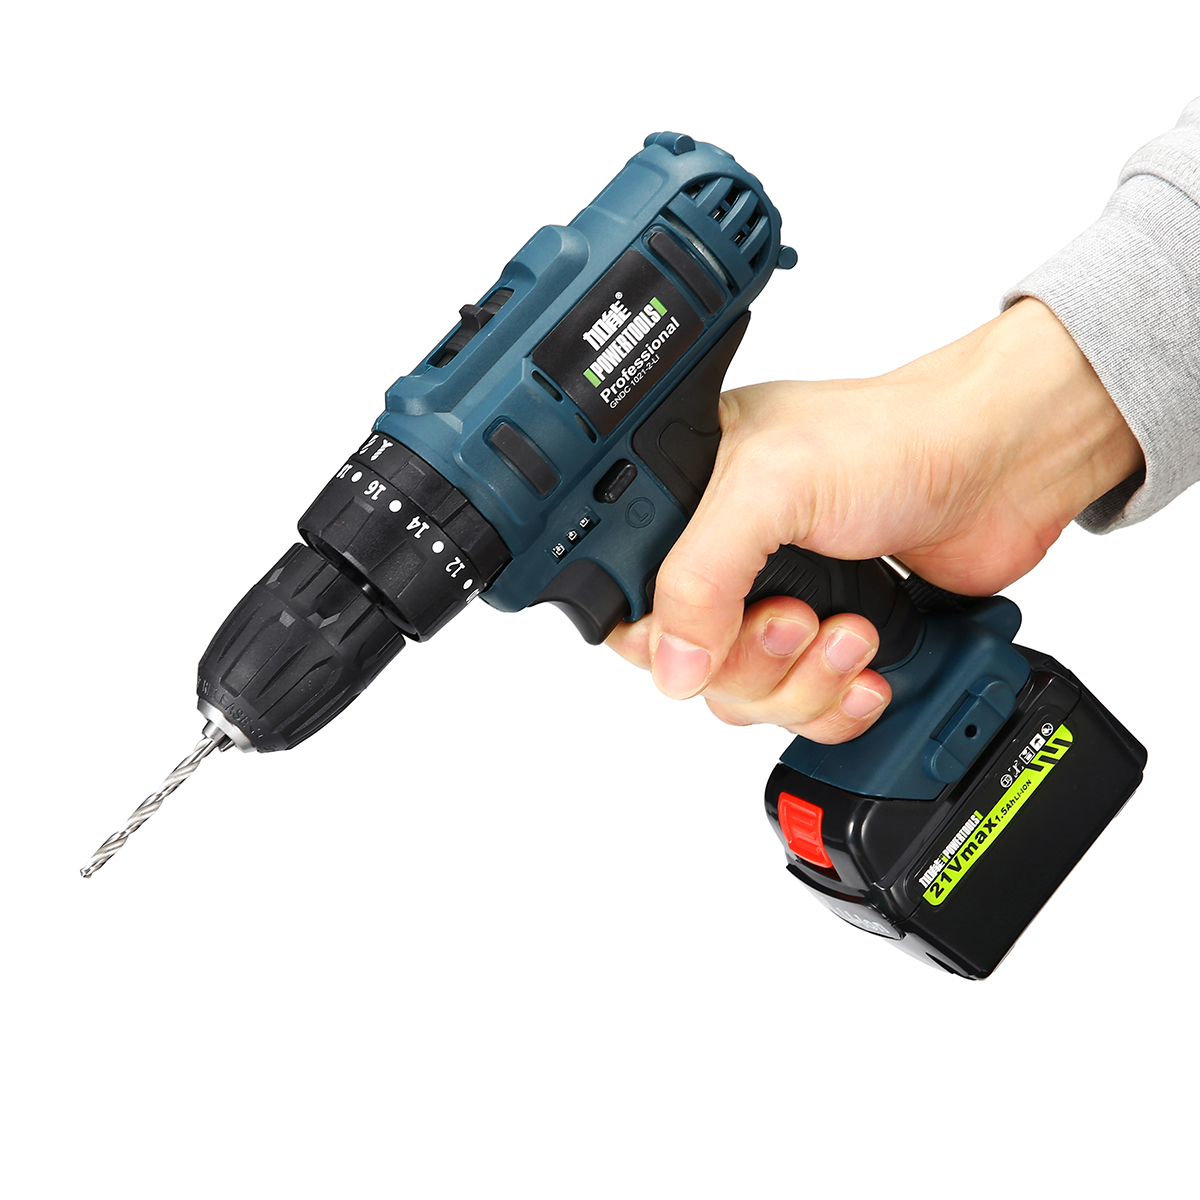 12V/21V LED Light Cordless Electric Impact Drill Power Drills Screwdriver Li-Ion Battery